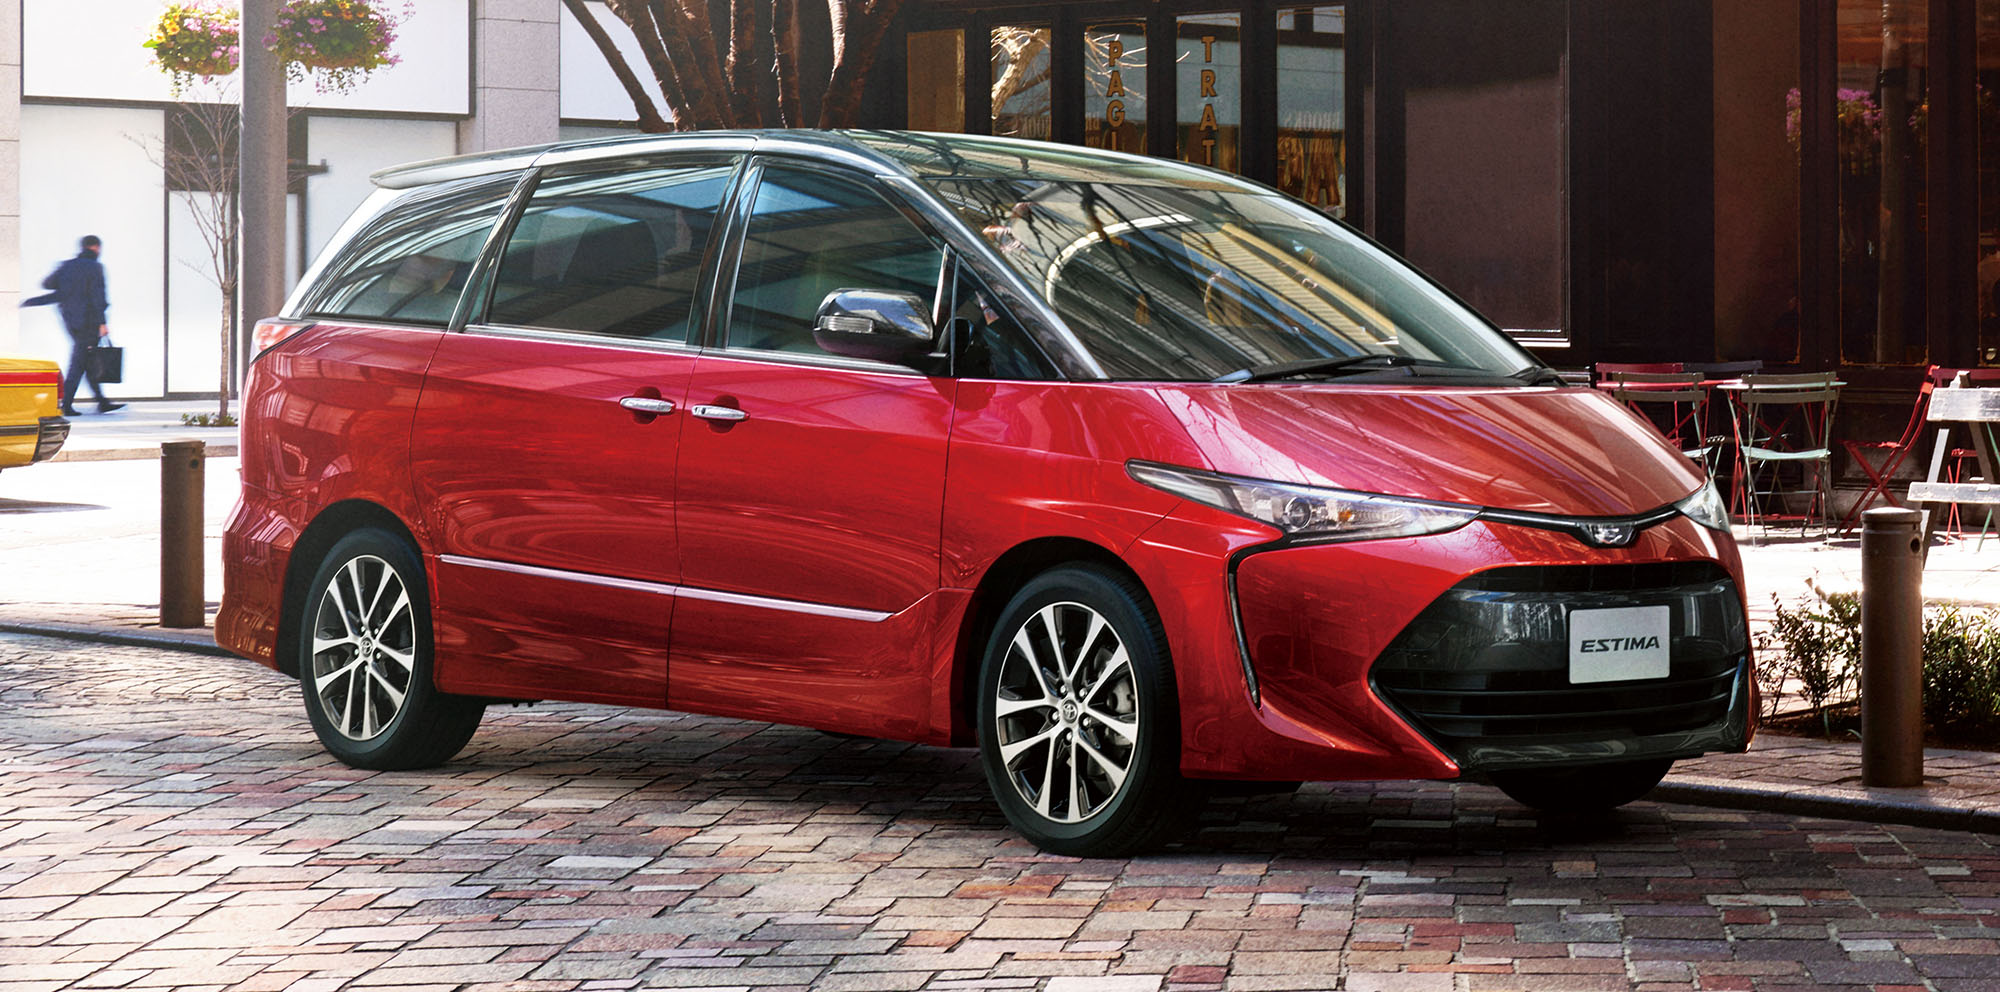 Toyota Estima 2018 >> 2017 Toyota Tarago facelift due in the coming months - Photos (1 of 10)